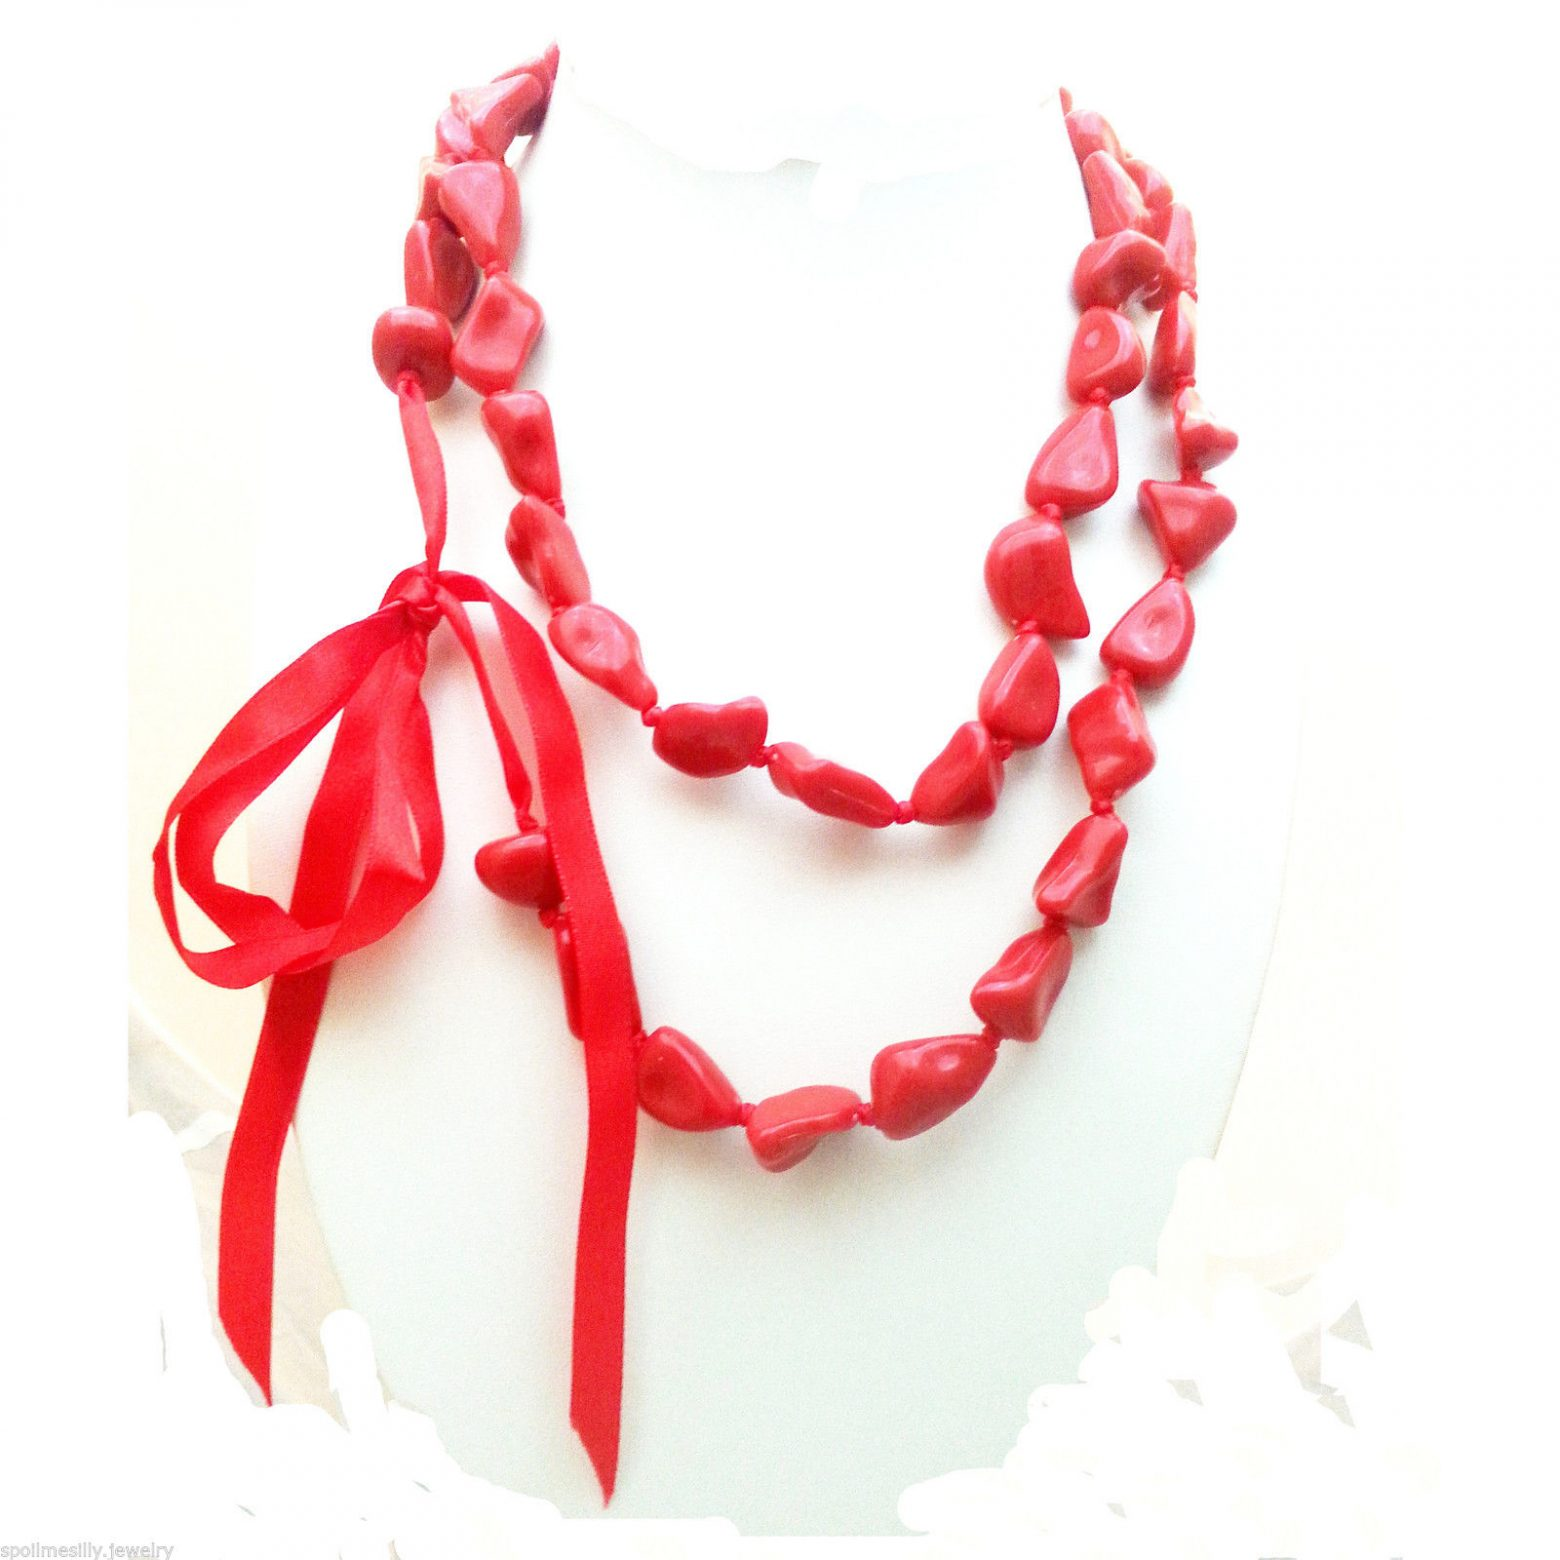 Jewellery-Resin-Extra-Long-48-Red-Necklace-Large-Bracelet-Anklet-Ribbon-New-400740944699-3